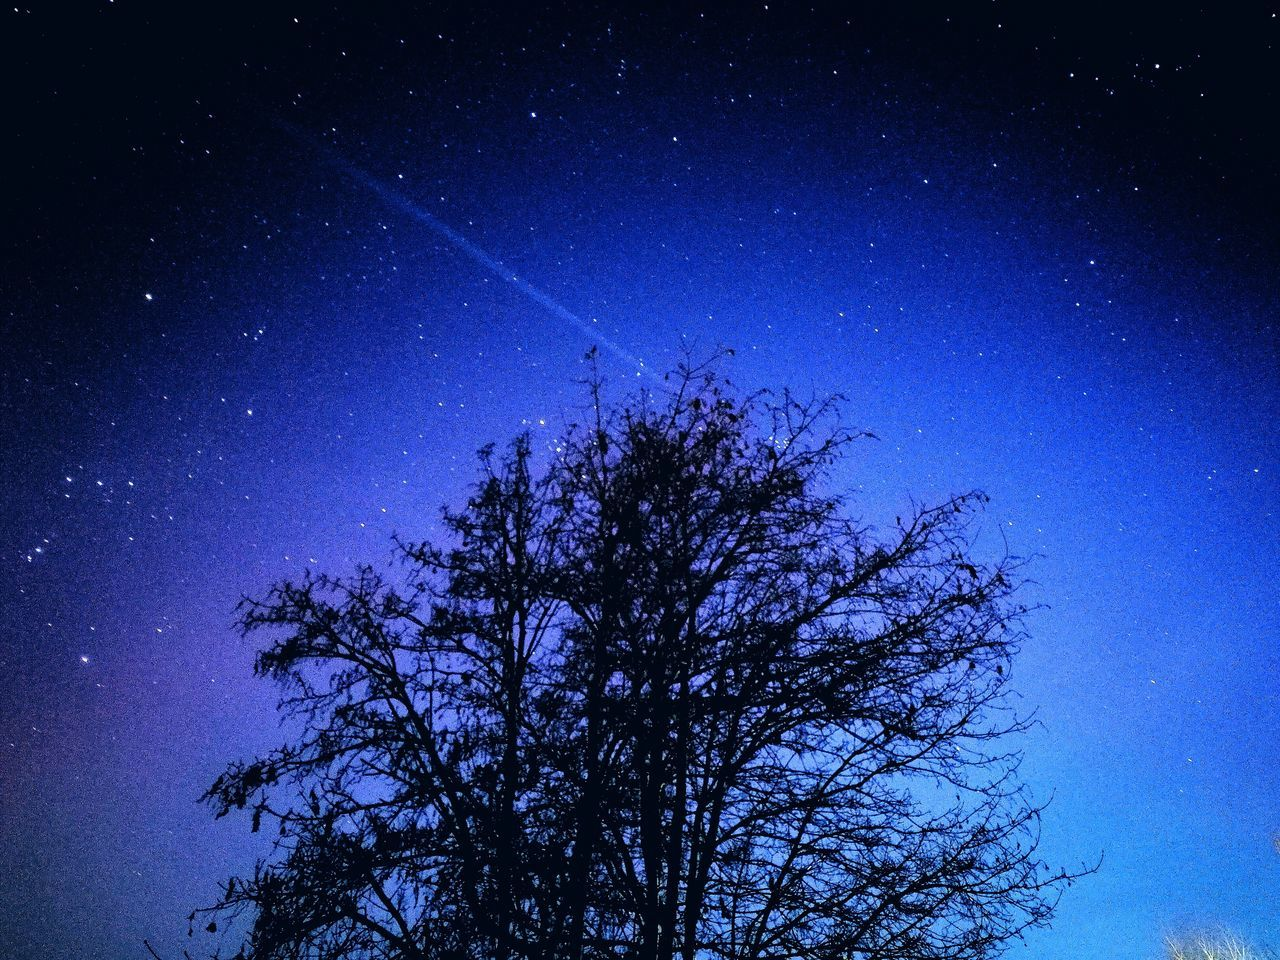 tree, star - space, low angle view, beauty in nature, night, nature, blue, astronomy, no people, tranquility, tranquil scene, sky, outdoors, silhouette, scenics, star field, clear sky, starry, growth, galaxy, branch, space, constellation, contrail